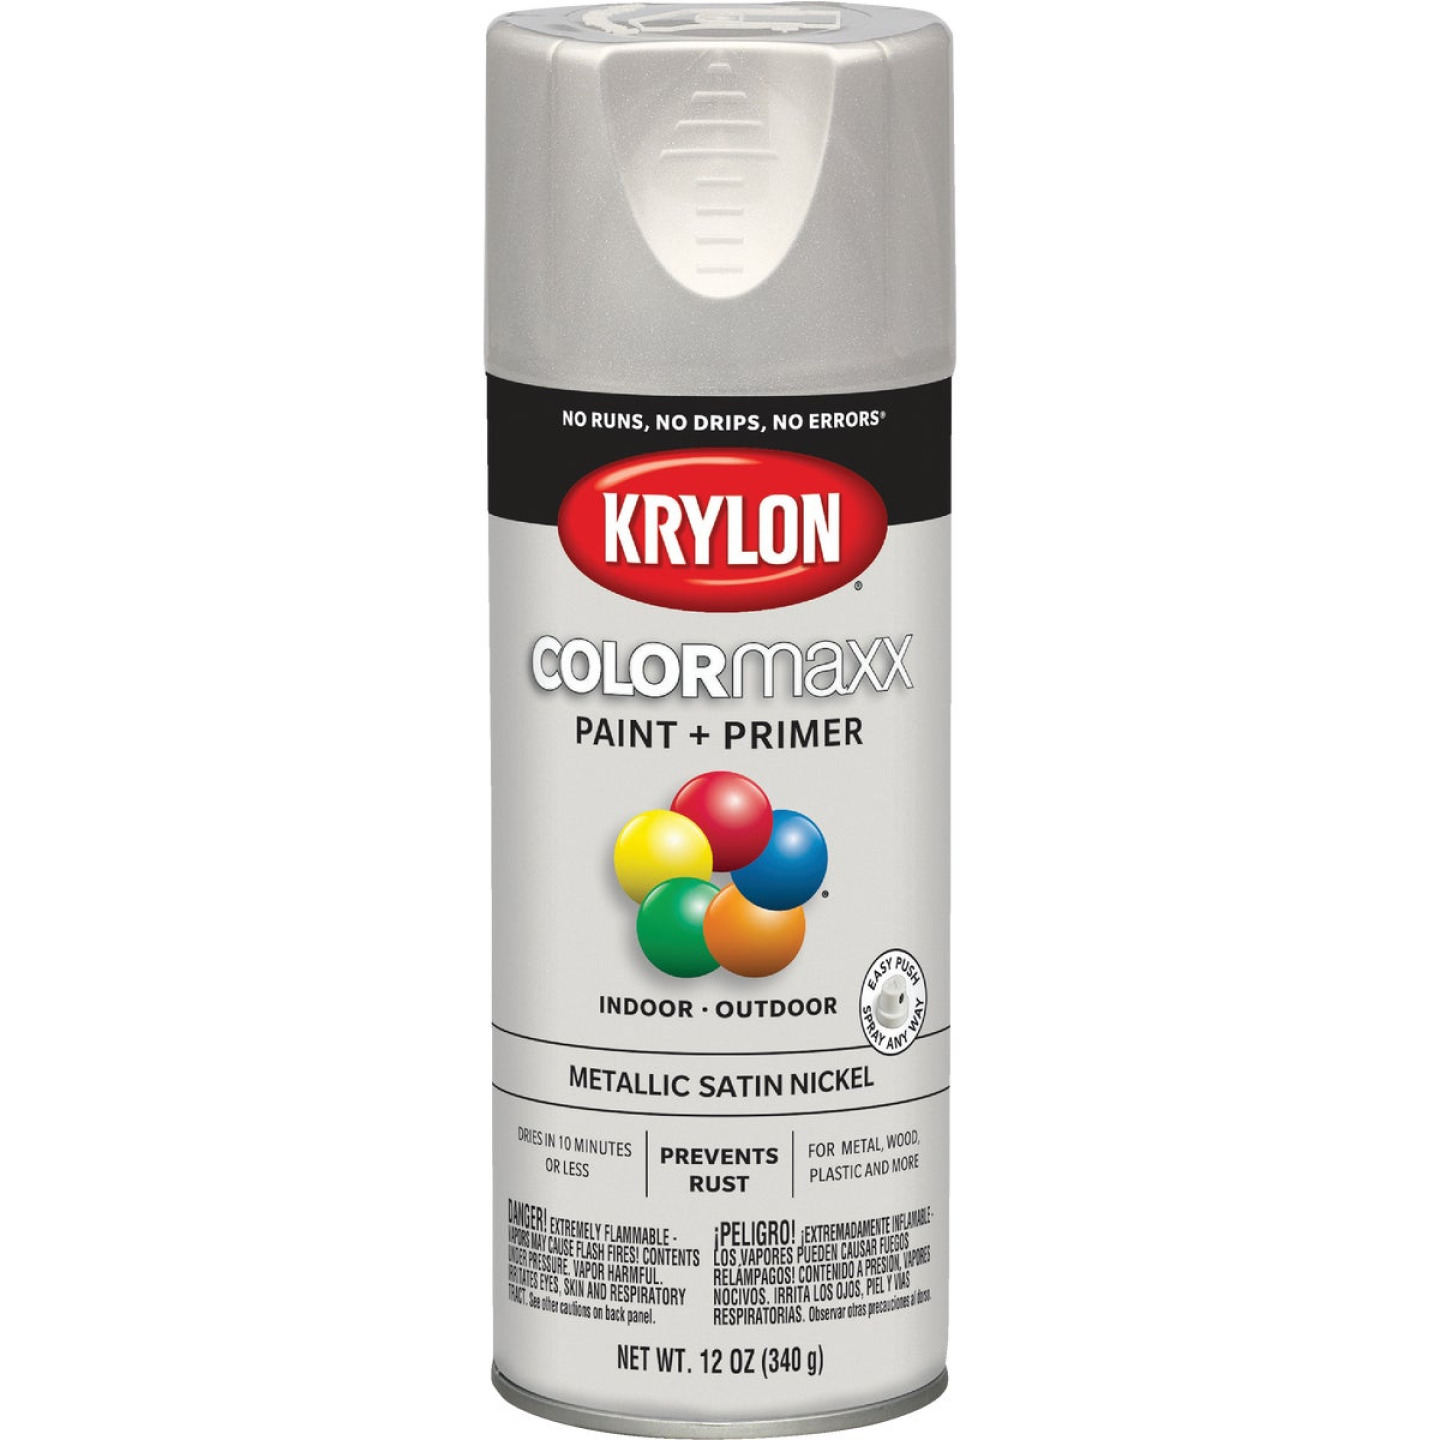 Krylon ColorMaxx 11 Oz. Brushed Metallic Satin Spray Paint, Nickel Image 1